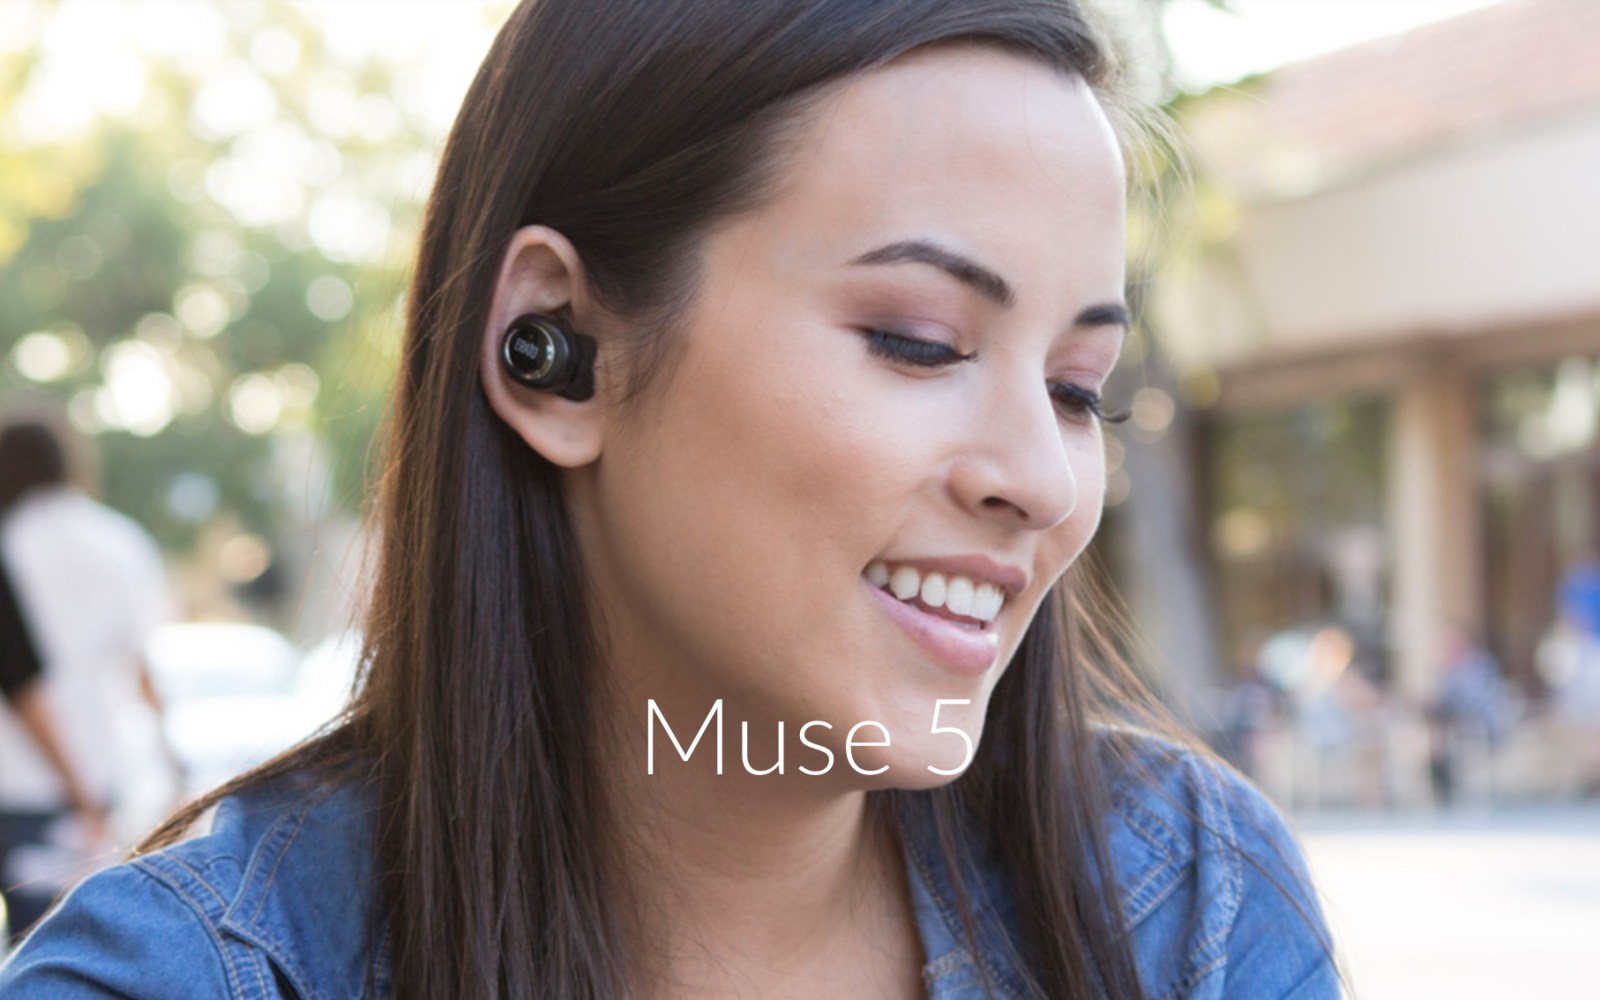 Erato's latest truly wireless earbuds undercut Apple AirPods on price